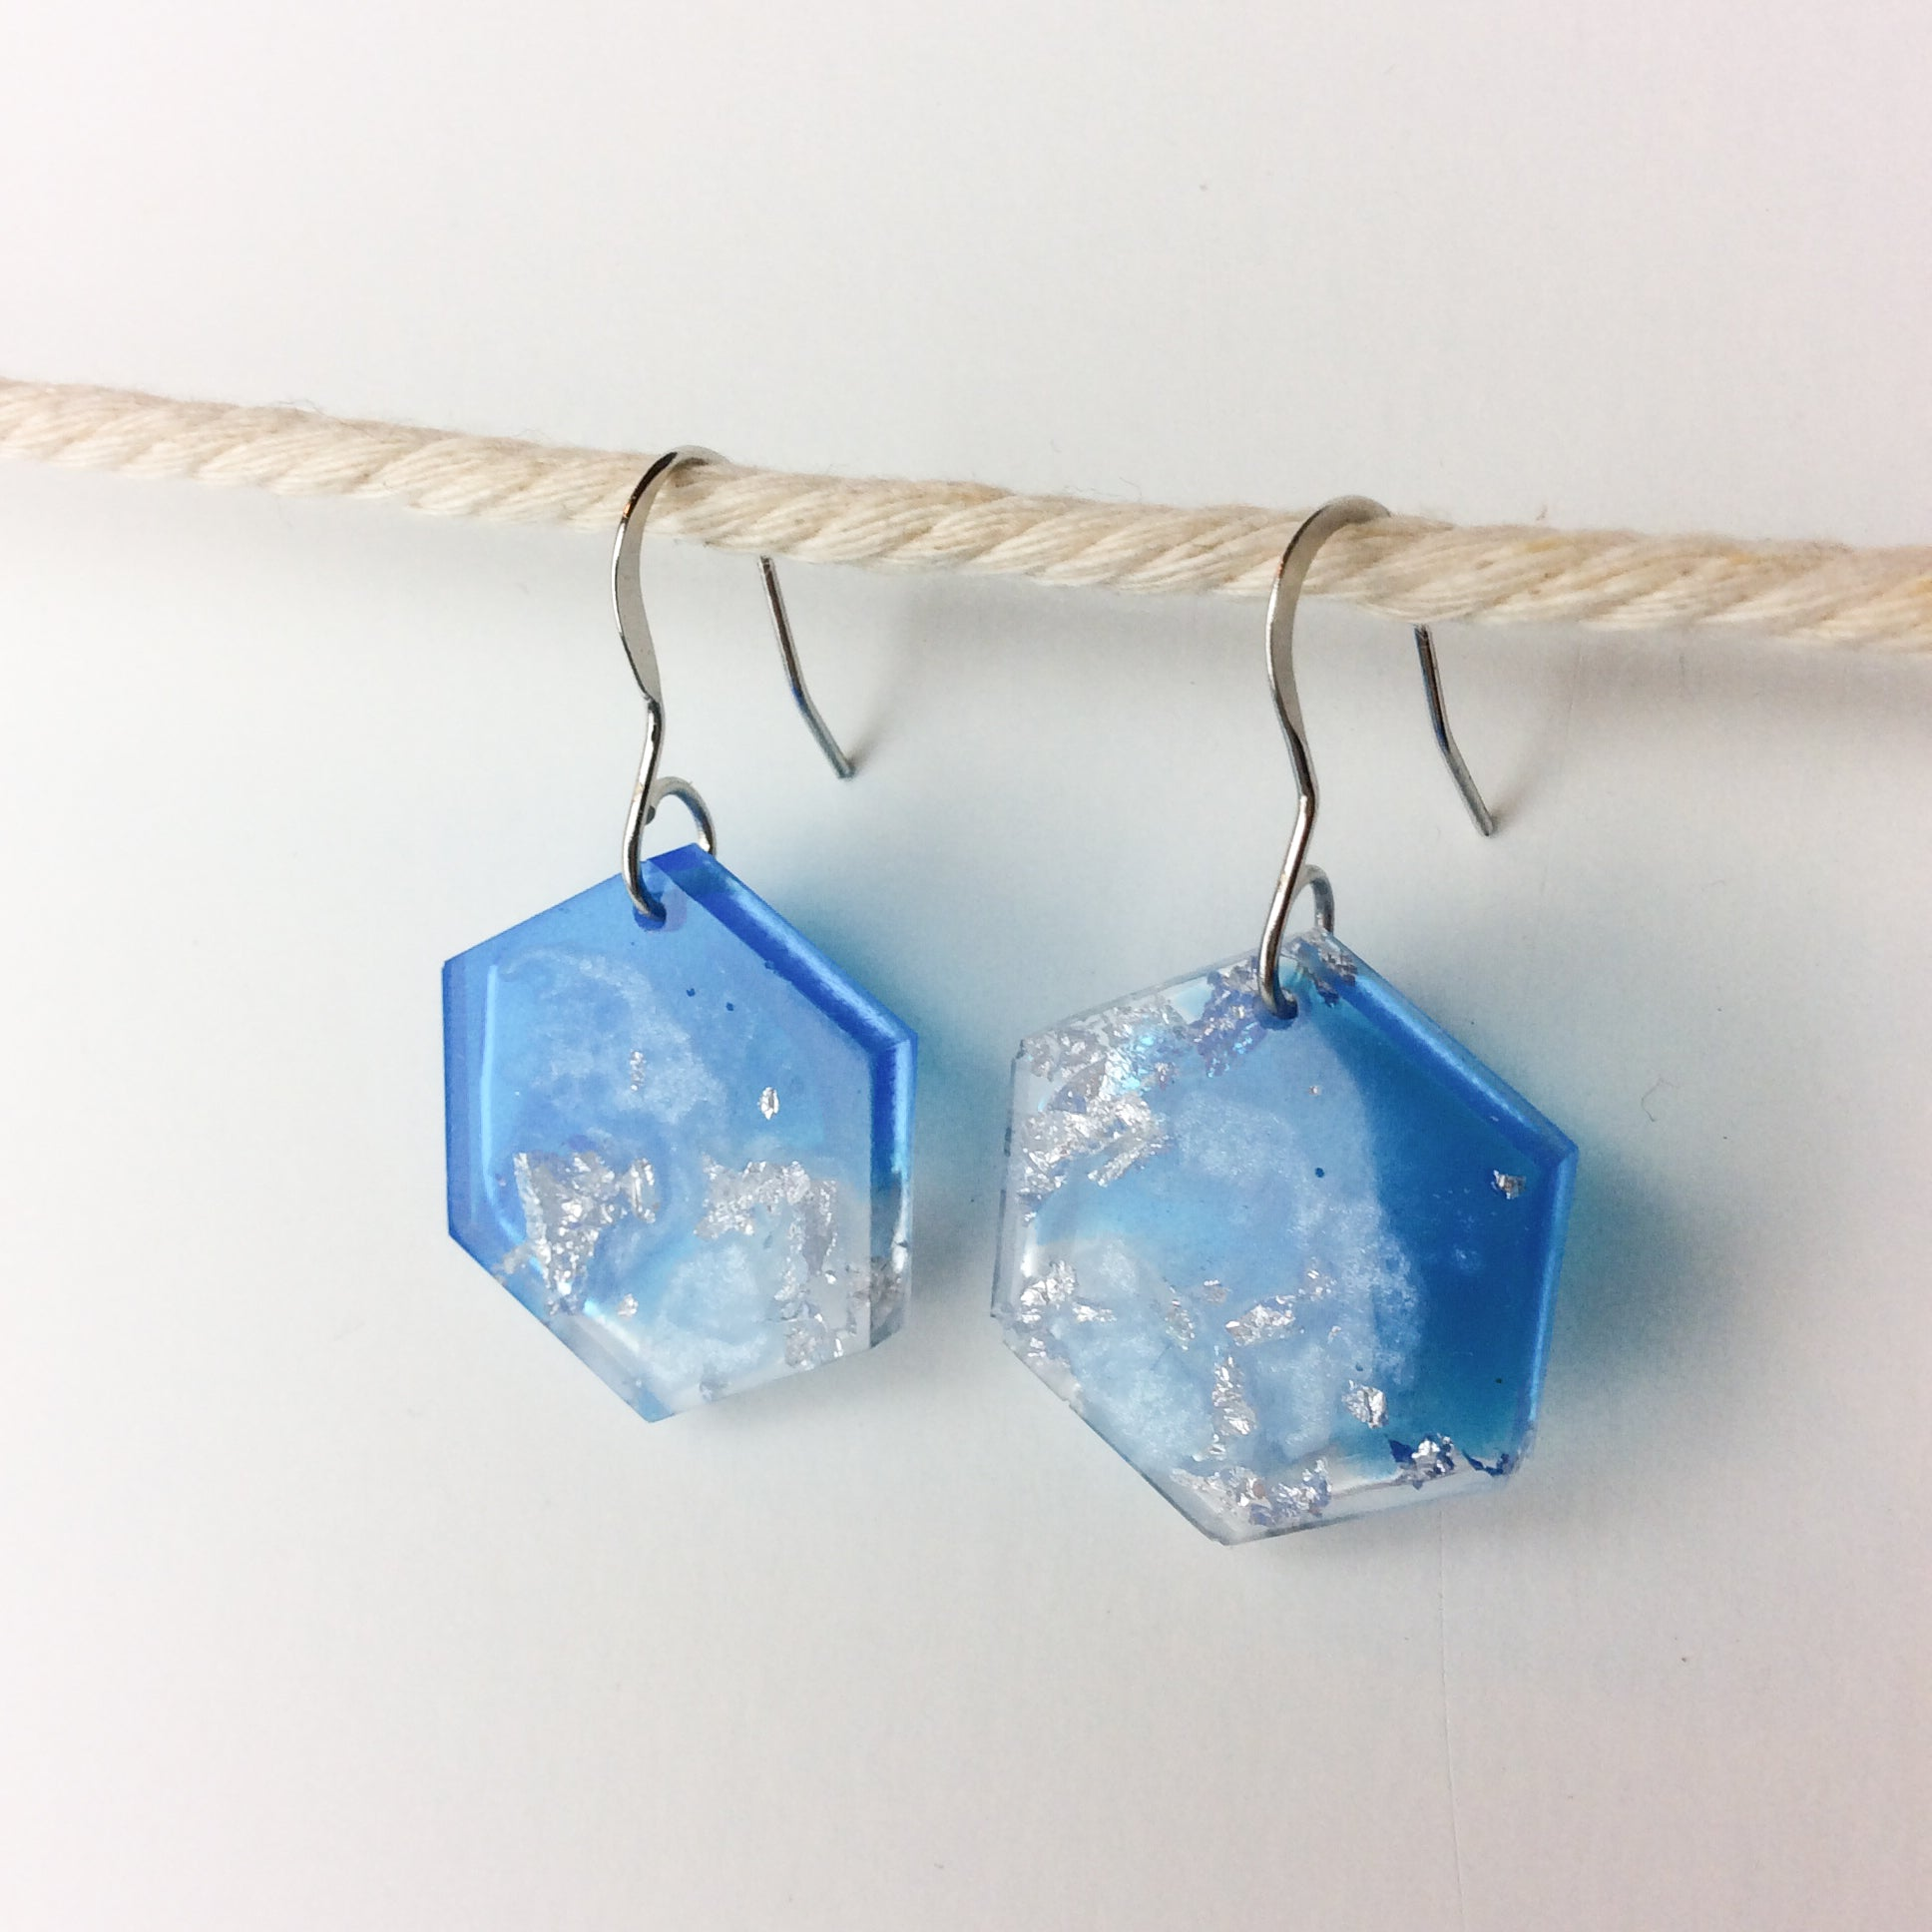 Hexagon Earrings Glacier Blue & Silver - Starlight Bags